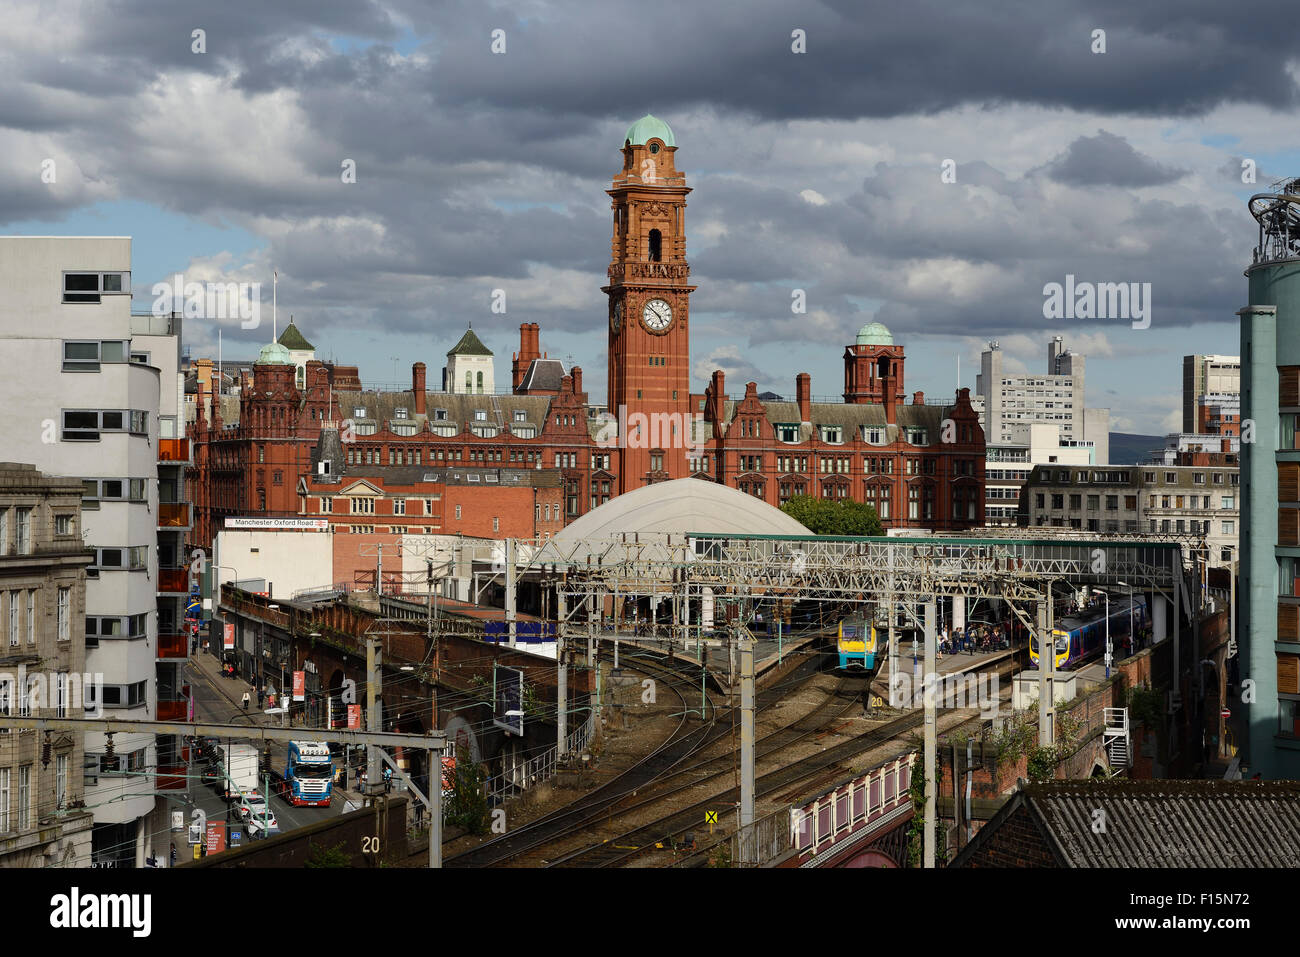 Manchester Oxford Road railway station and the Palace Hotel building in Manchester city centre UK - Stock Image